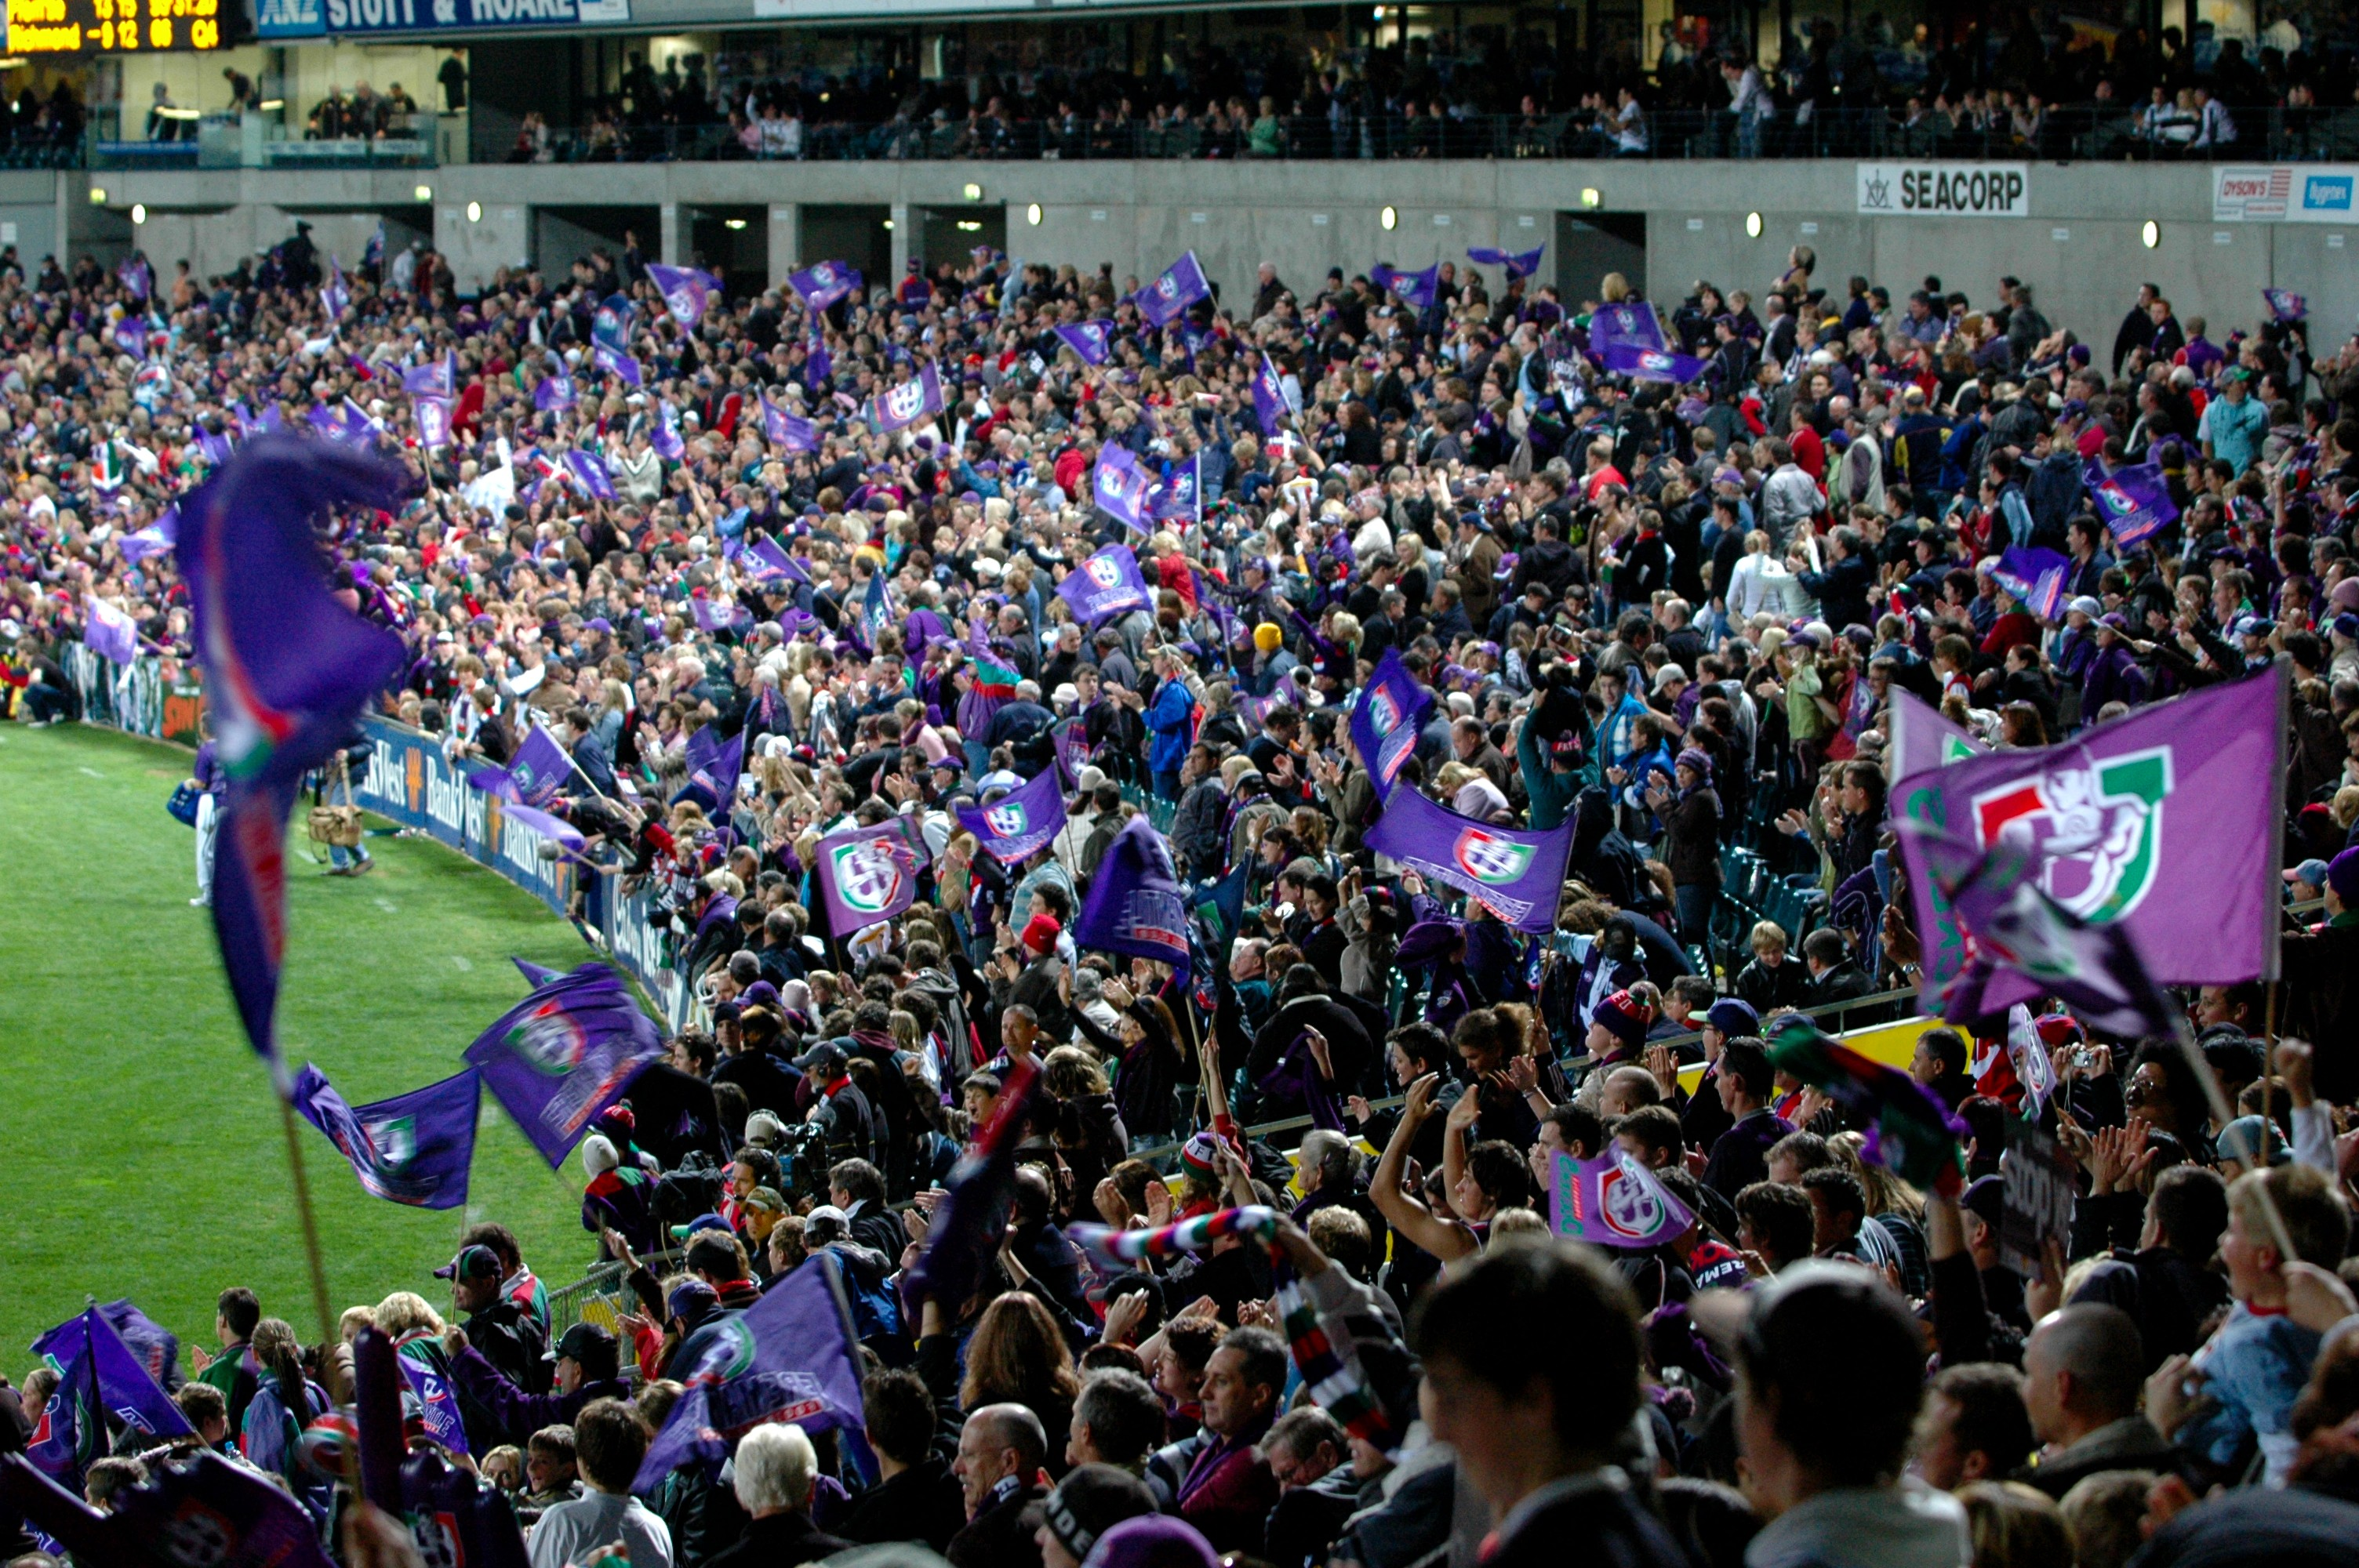 English: Dockers supporters cheering